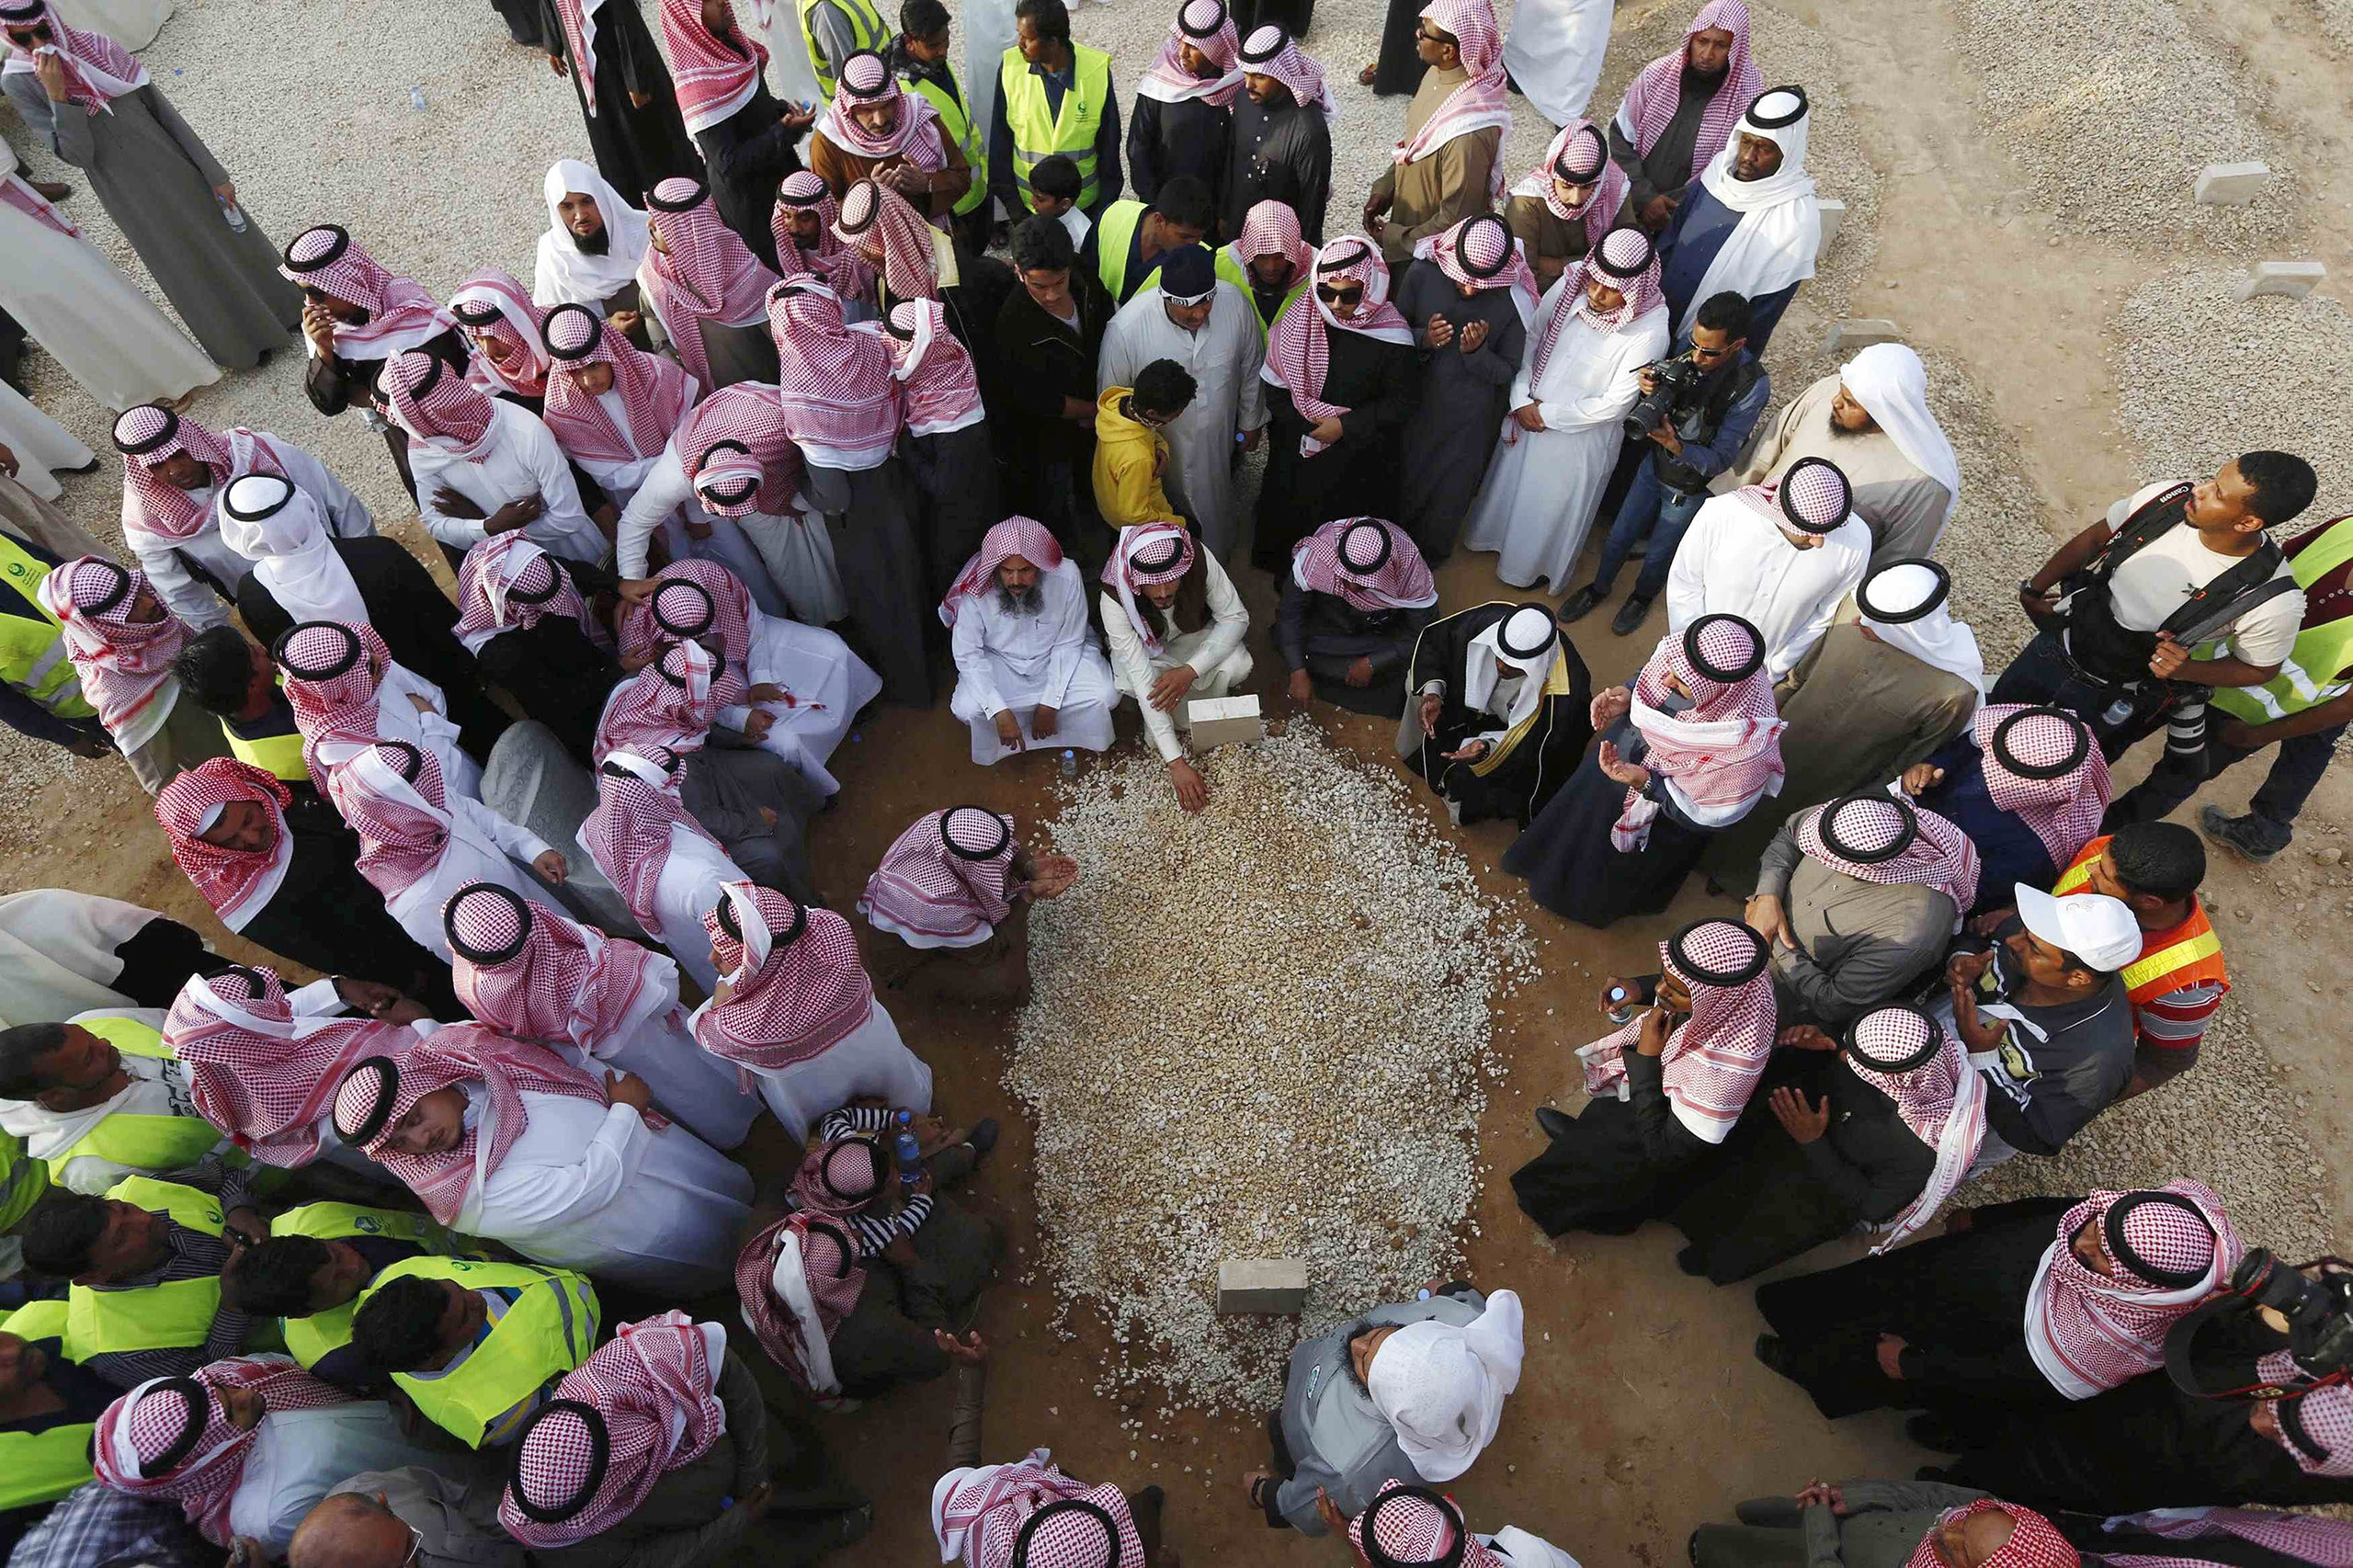 In keeping with tradition, King Abdullah, 90, was buried in an unmarked grave in Riyadh on Jan. 23, after ruling Saudi Arabia for nearly a decade